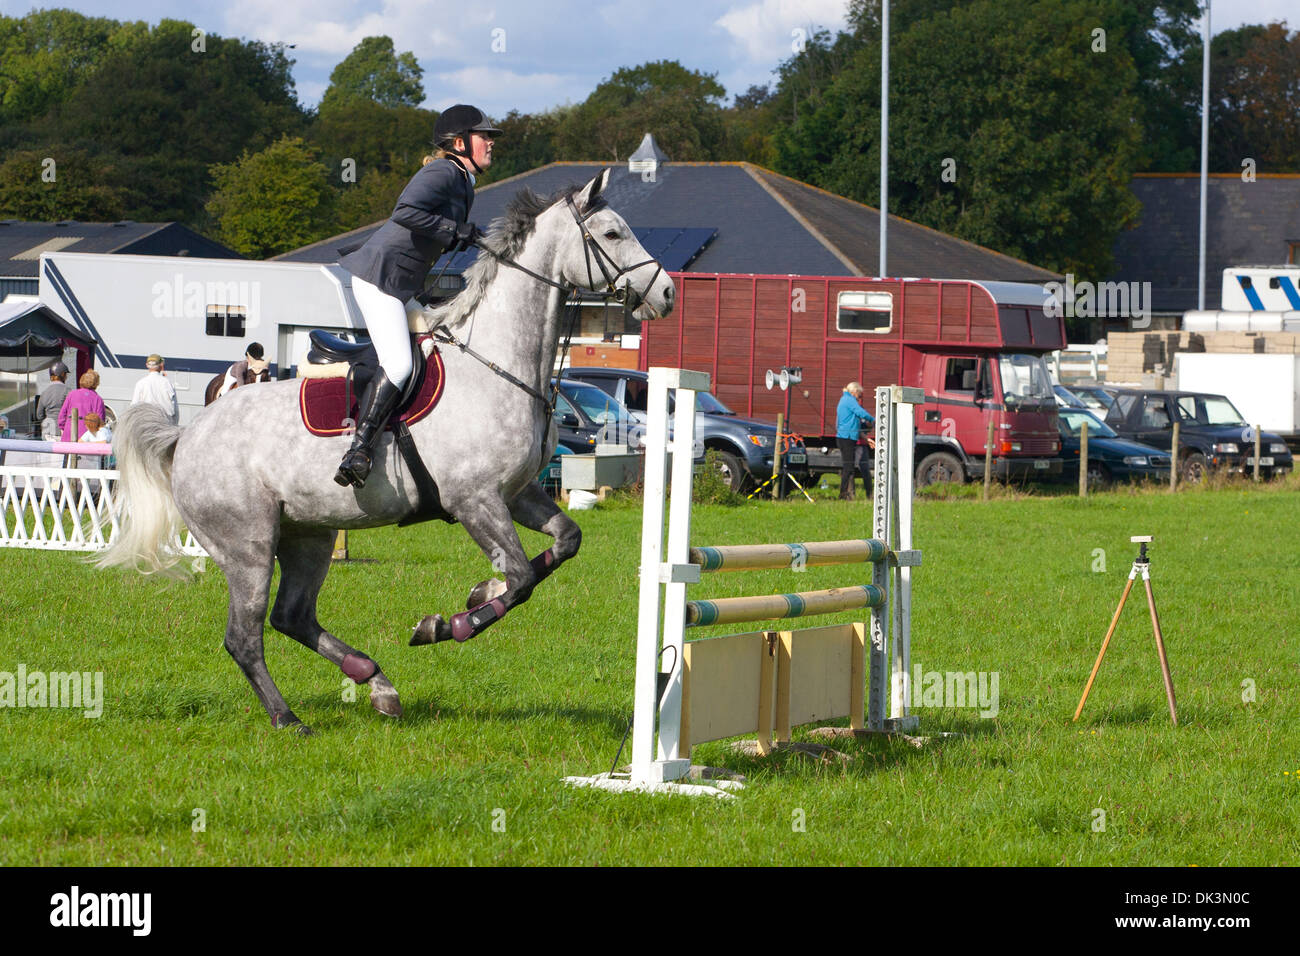 Horse Jumping eventing cross country equine sport jump show rural farm box gray gymkhana Godshill Isle of Wight - Stock Image